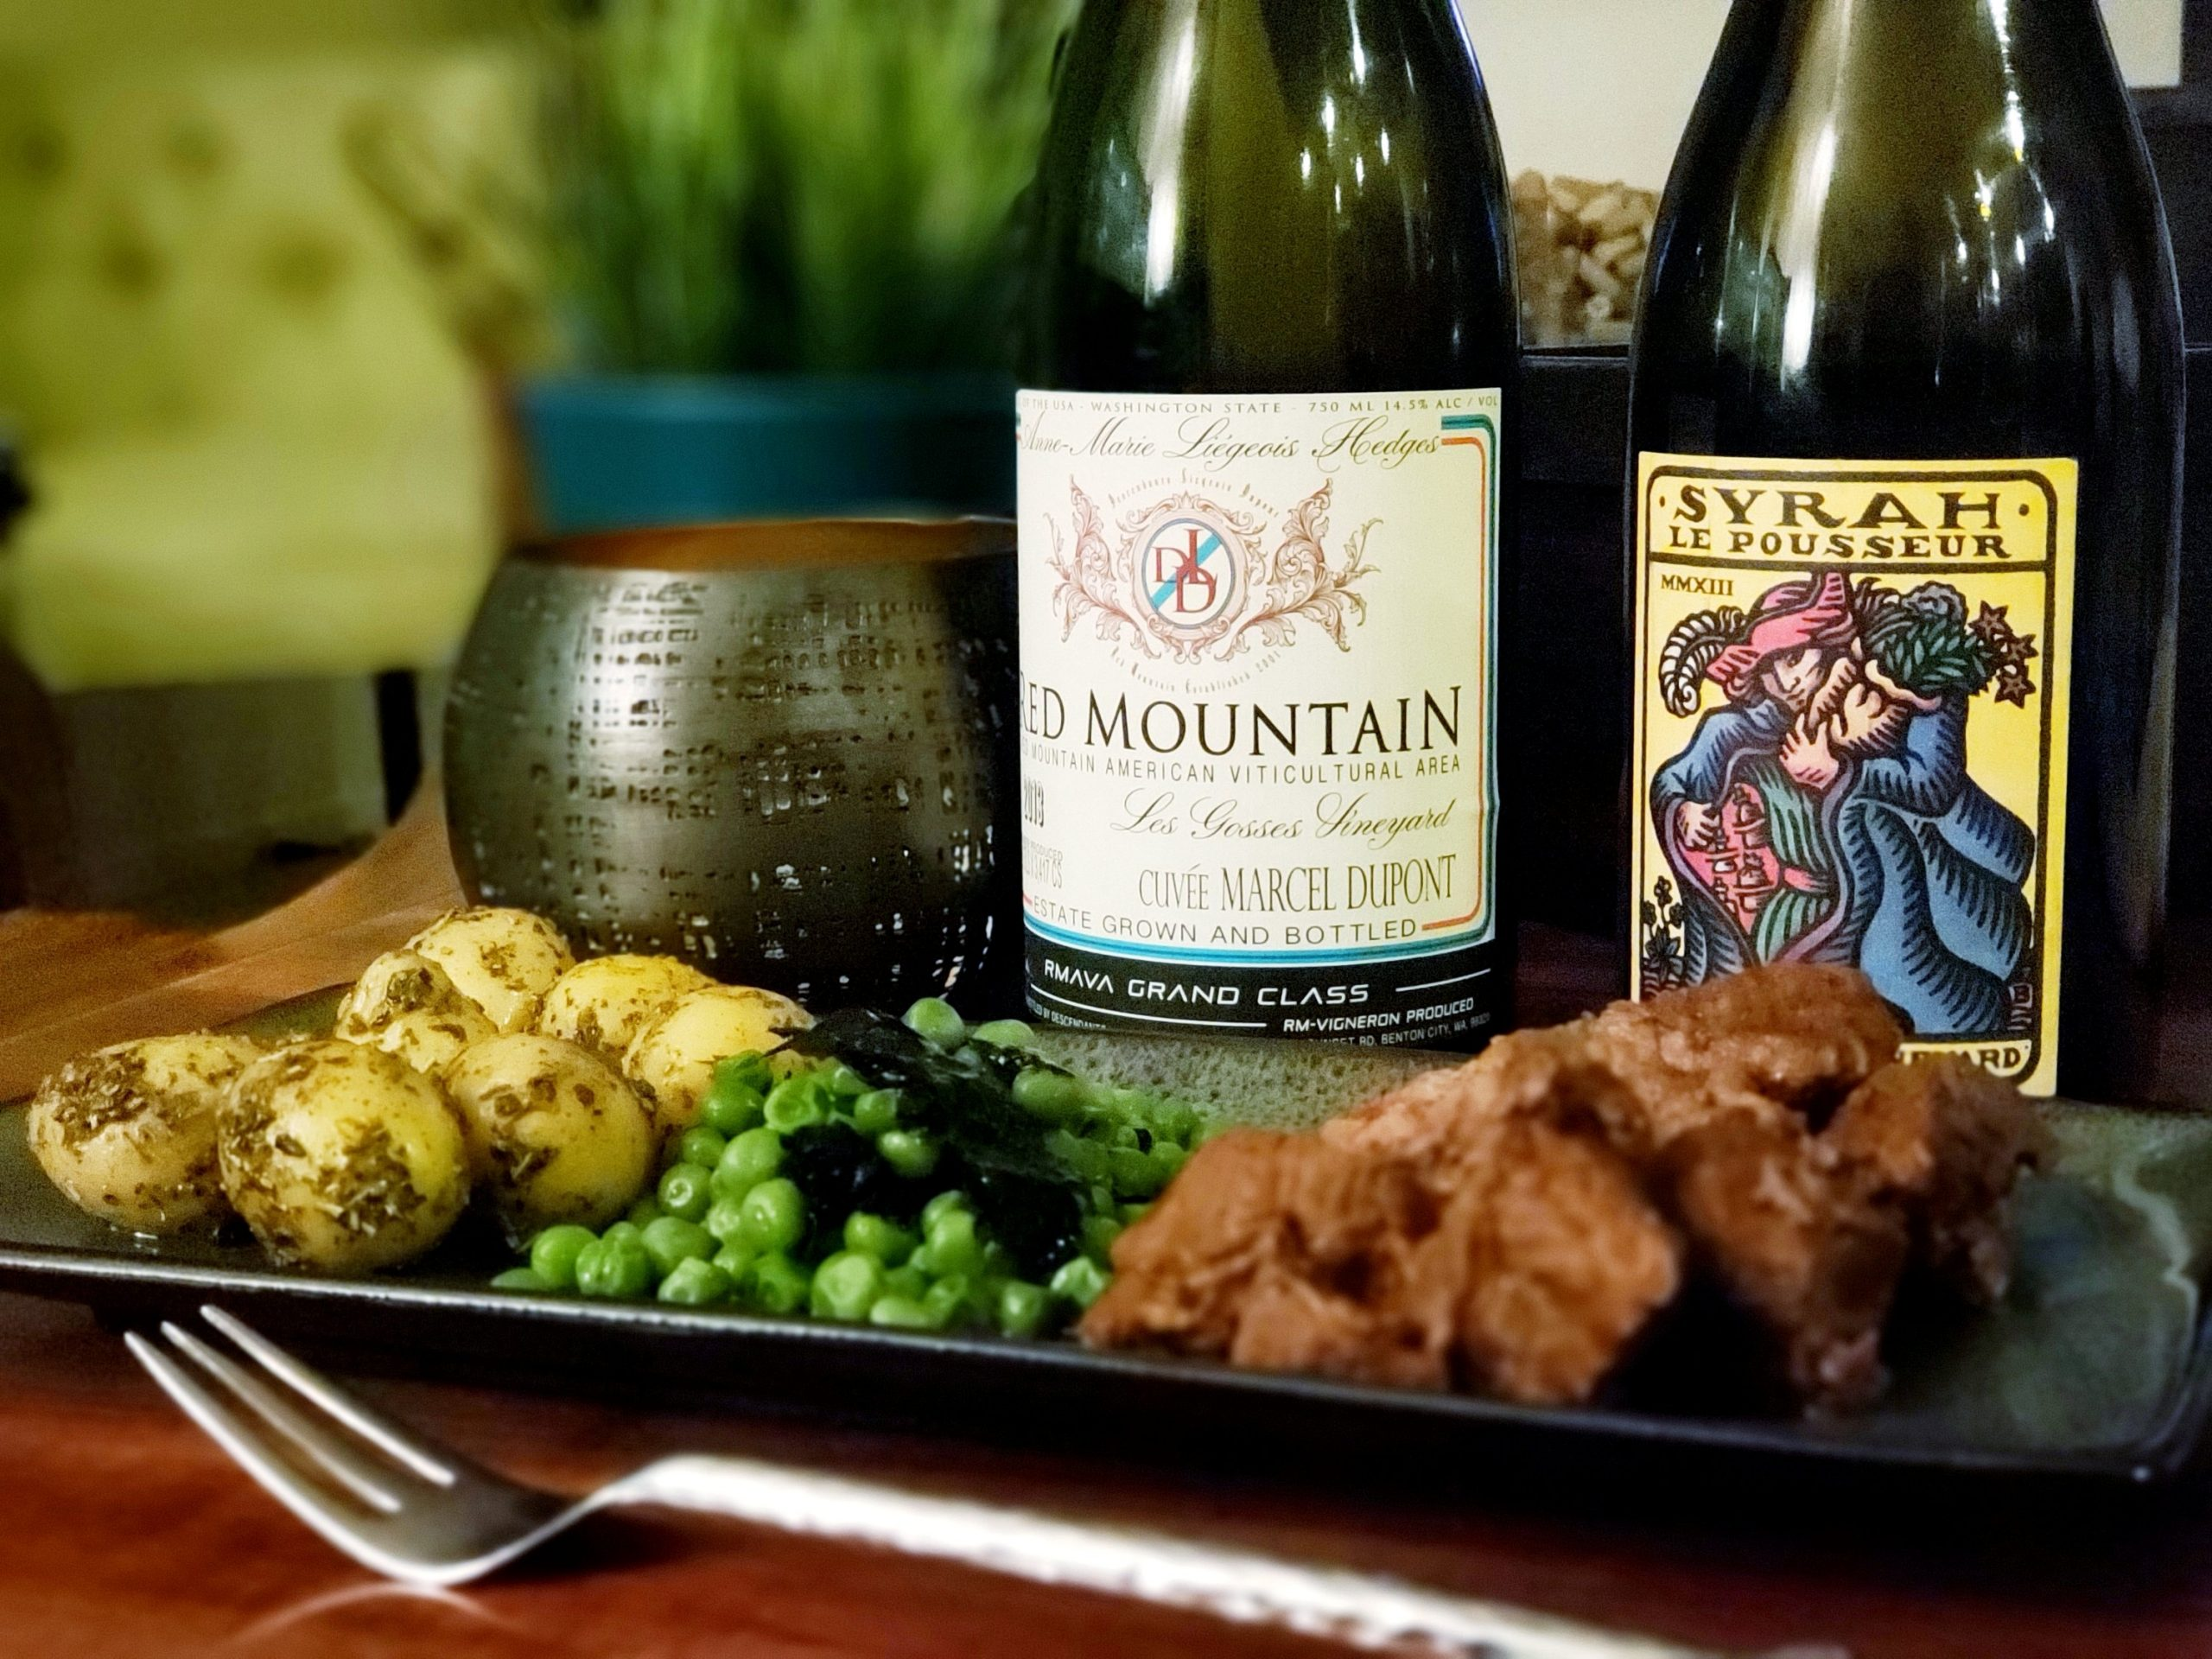 2013 Descendants Liegeois Dupont Red Mountain Syrah from Hedges Family Estate and Bonny Doon 2013 Le Pousseur syrah, mostly from Bien Nacido with bbq, peas and roasted herbed potatoes